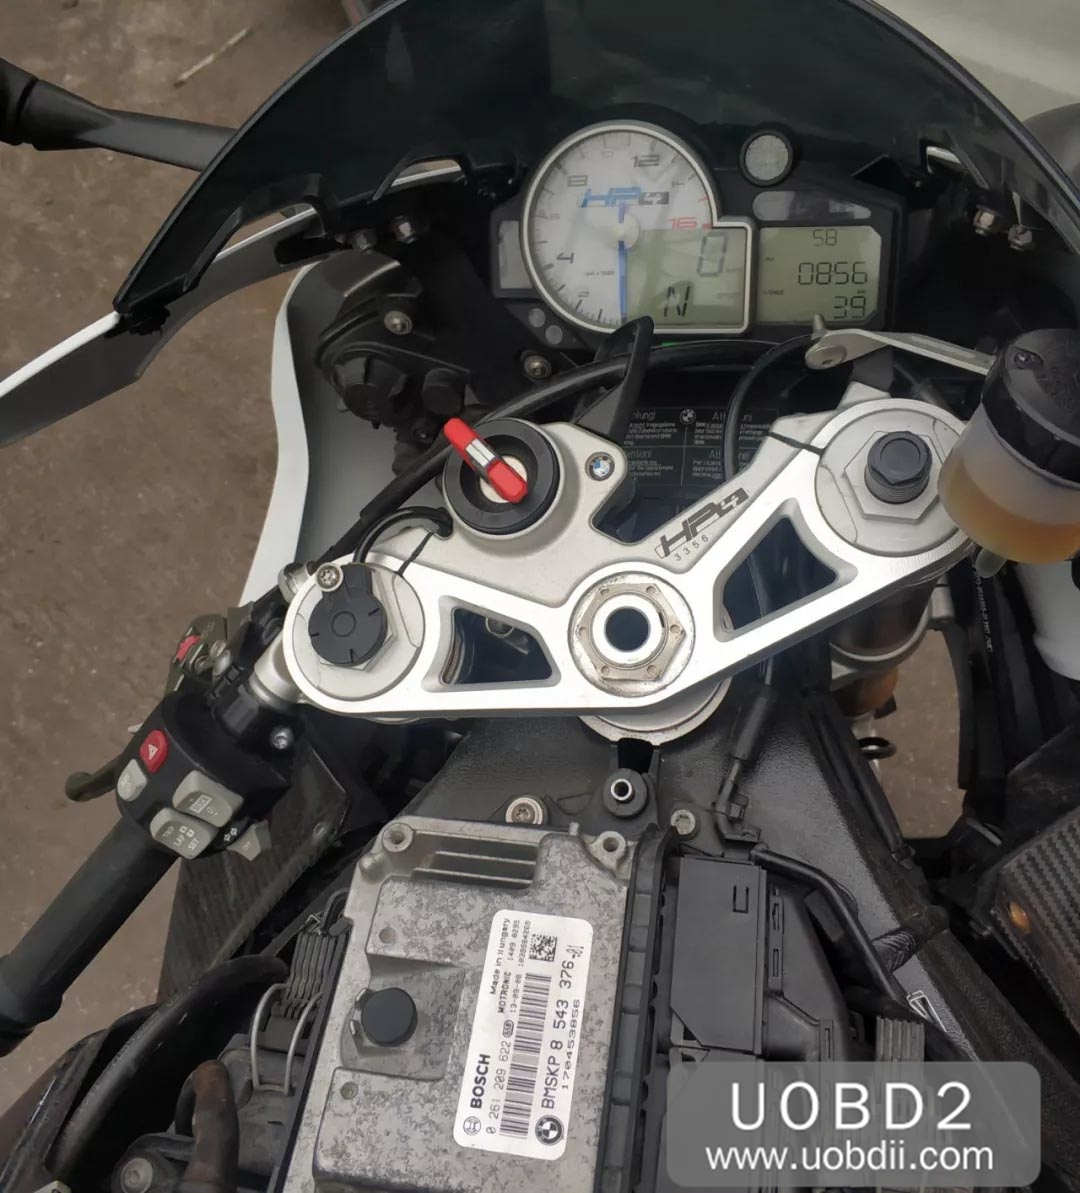 Bmw S1000rr Hp4 Race All Key Lost Programming Guide Uobdii Official Blog